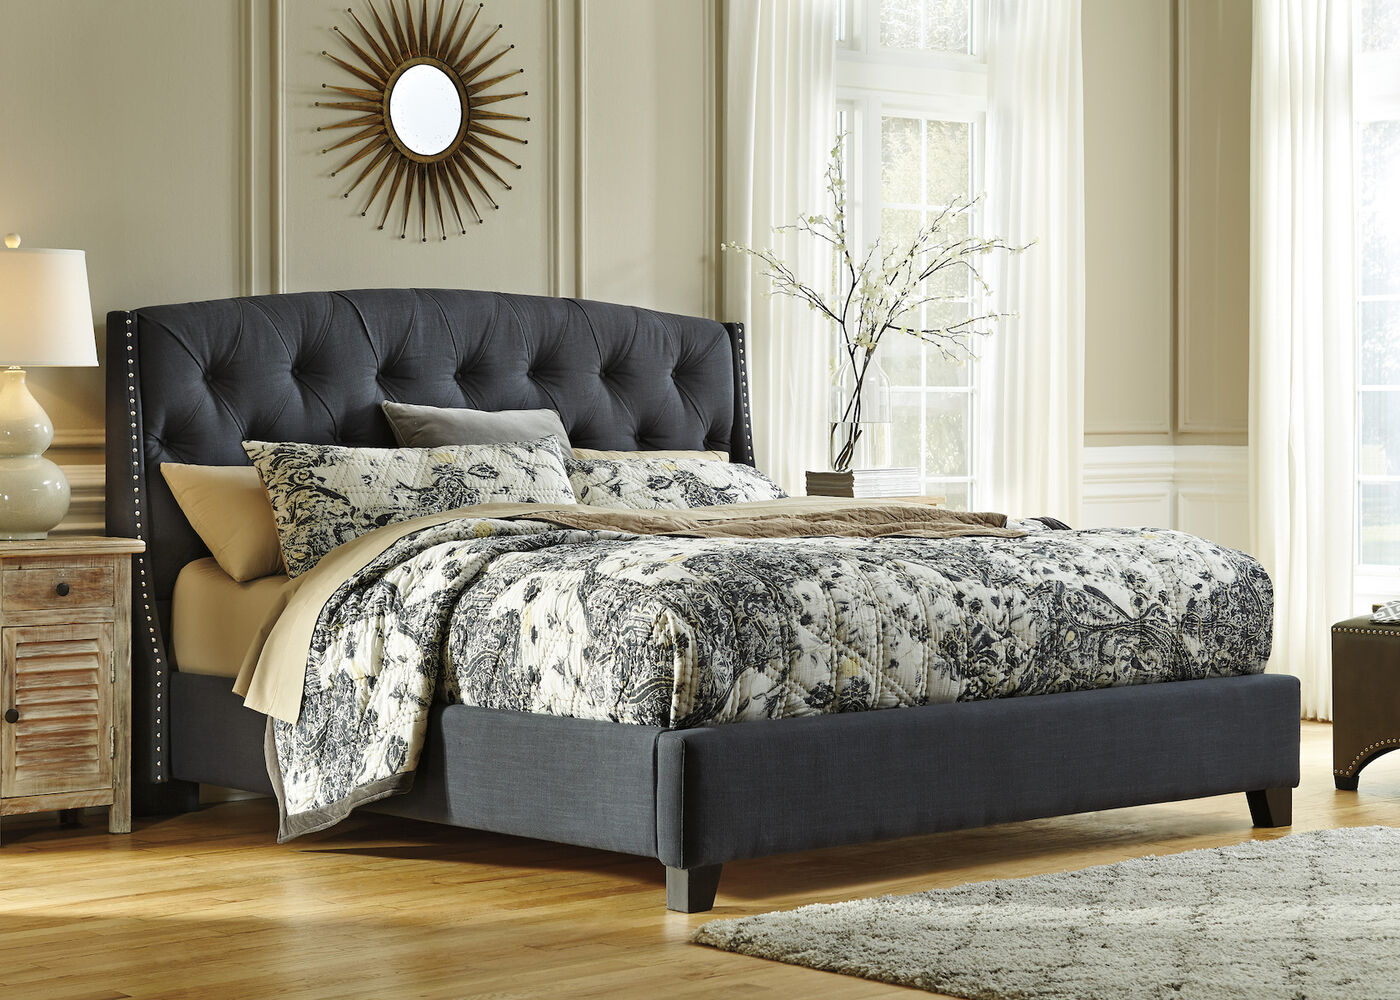 Design Tufted Bed ashley kasidon dark gray tufted bed mathis brothers furniture 56 button modern bed